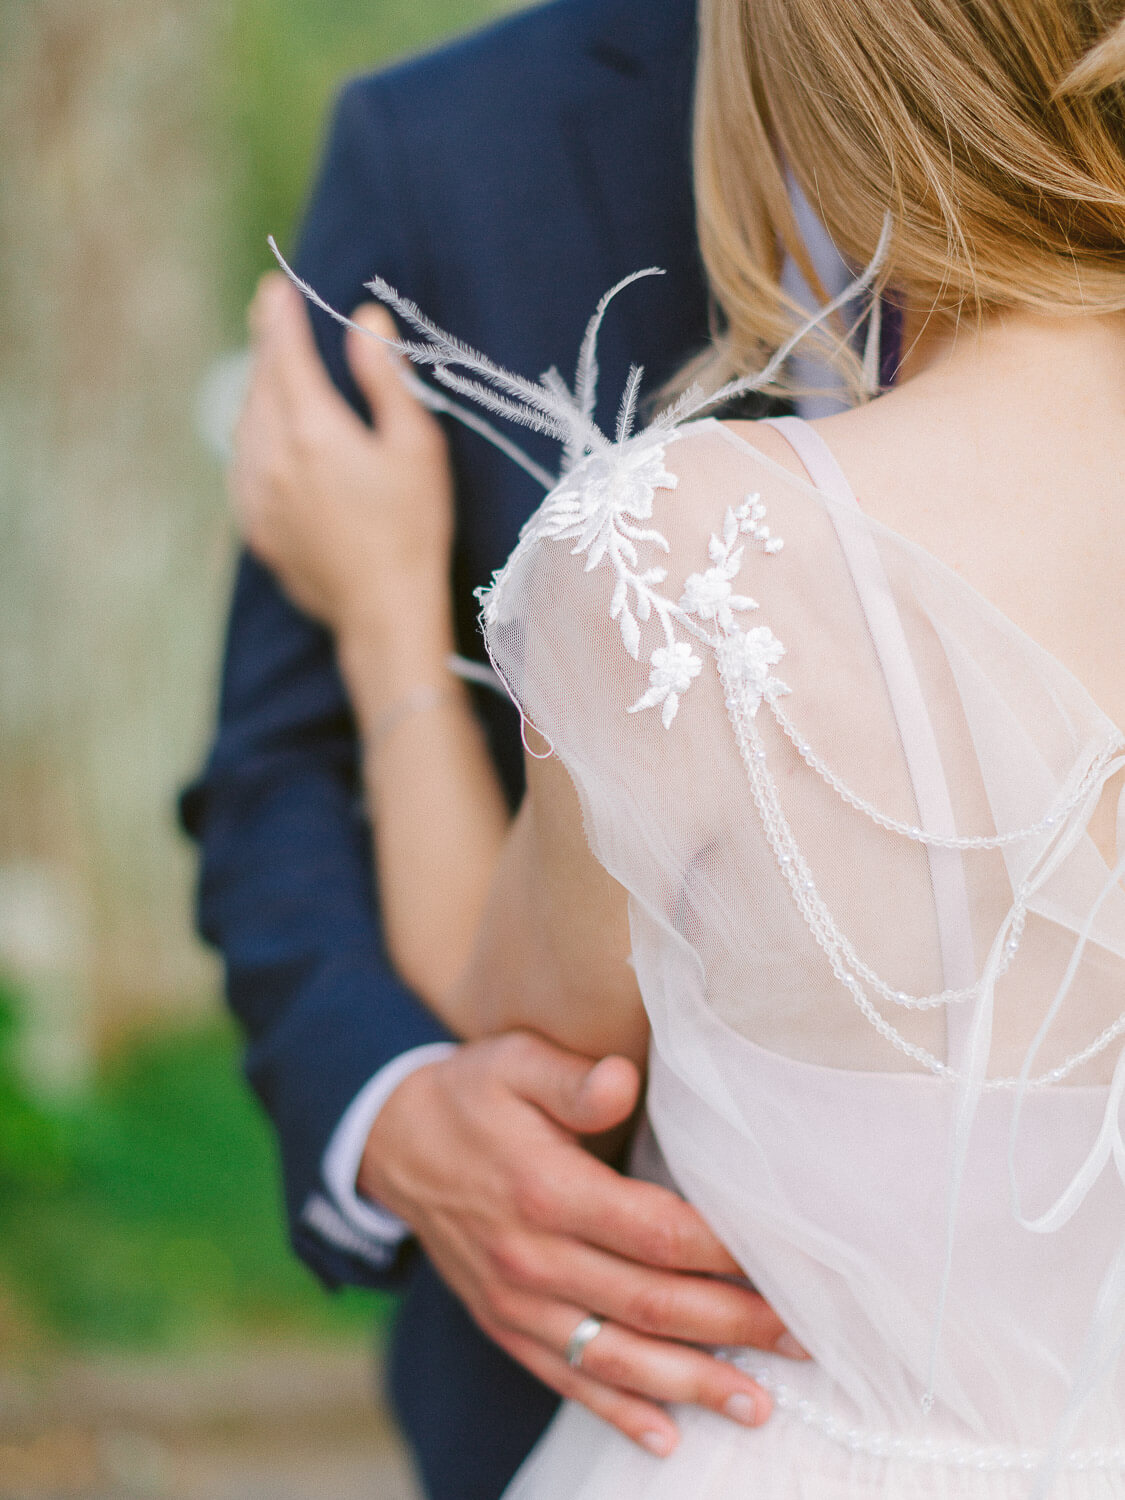 Beautiful wedding dress embroidered shoulder detail by Portugal Wedding Photographer